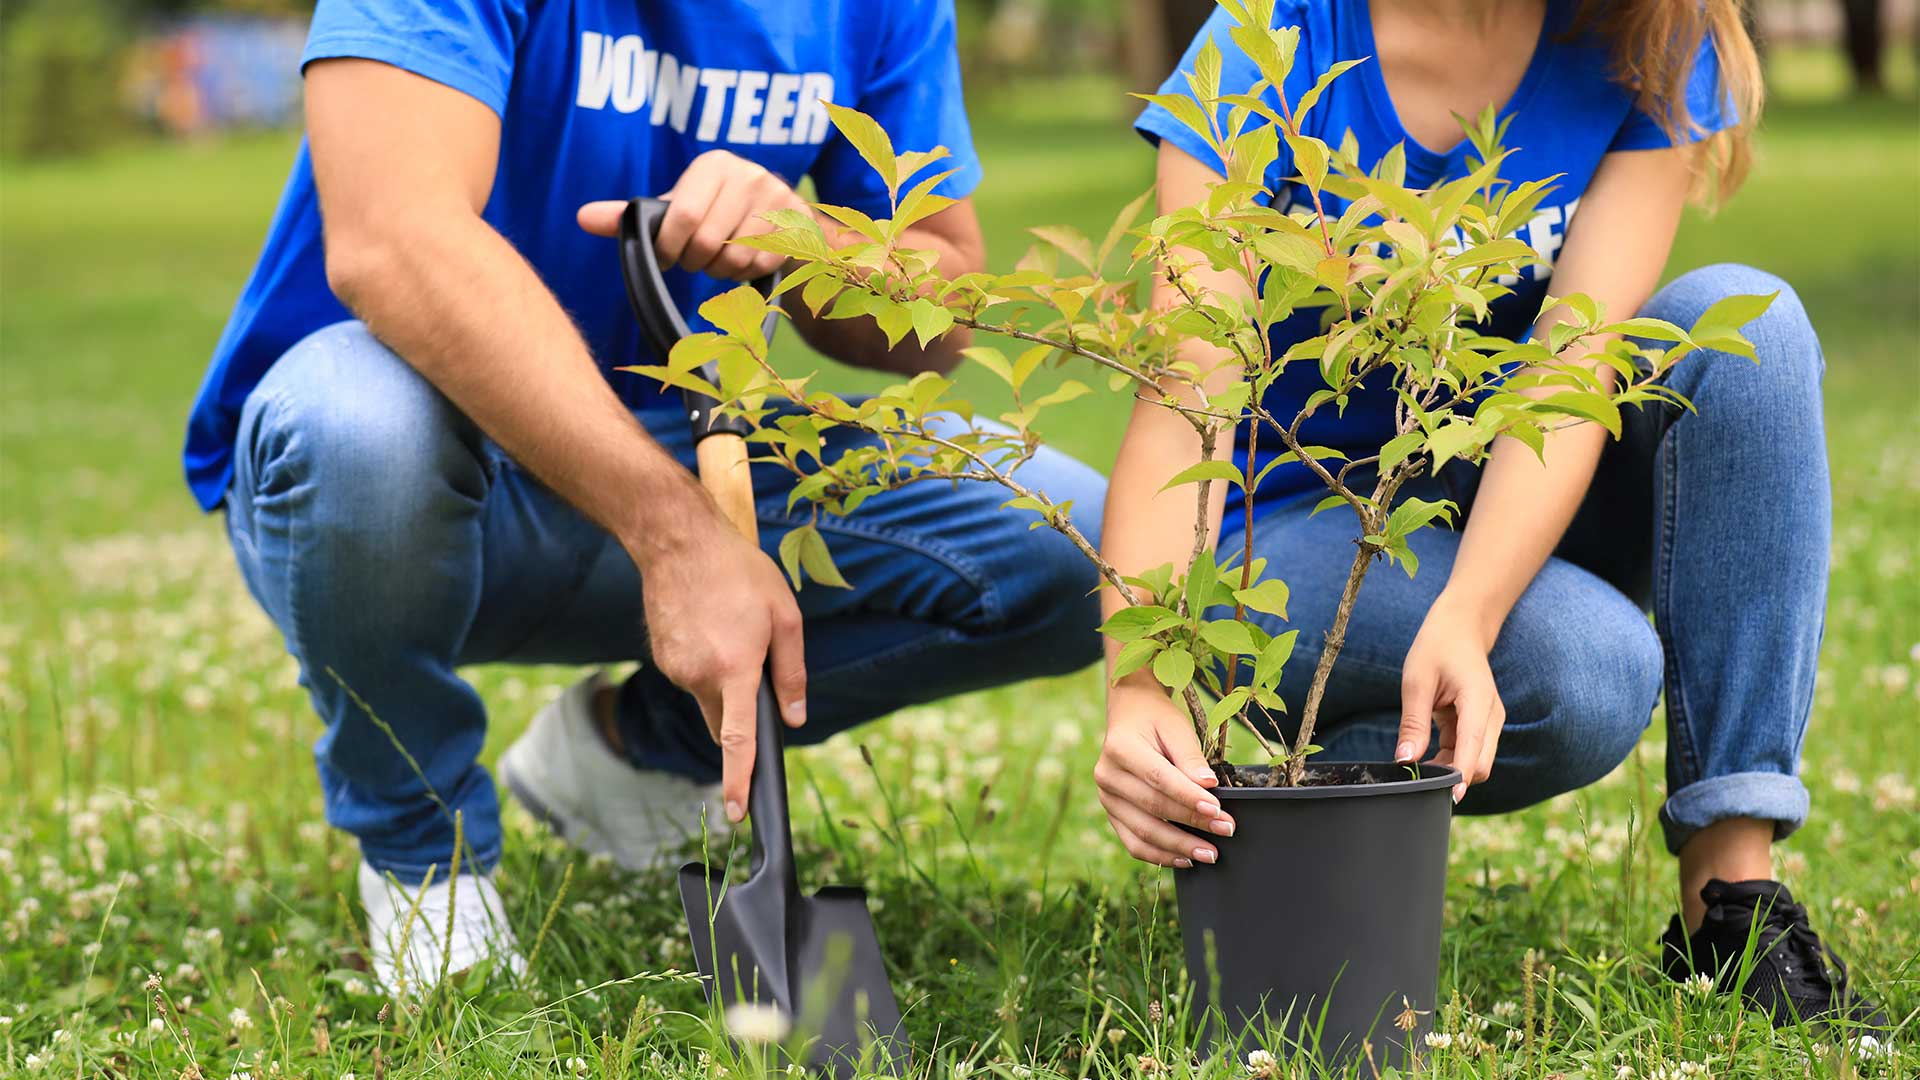 Volunteer for the White Rock Lake Foundation Tree Planting Event